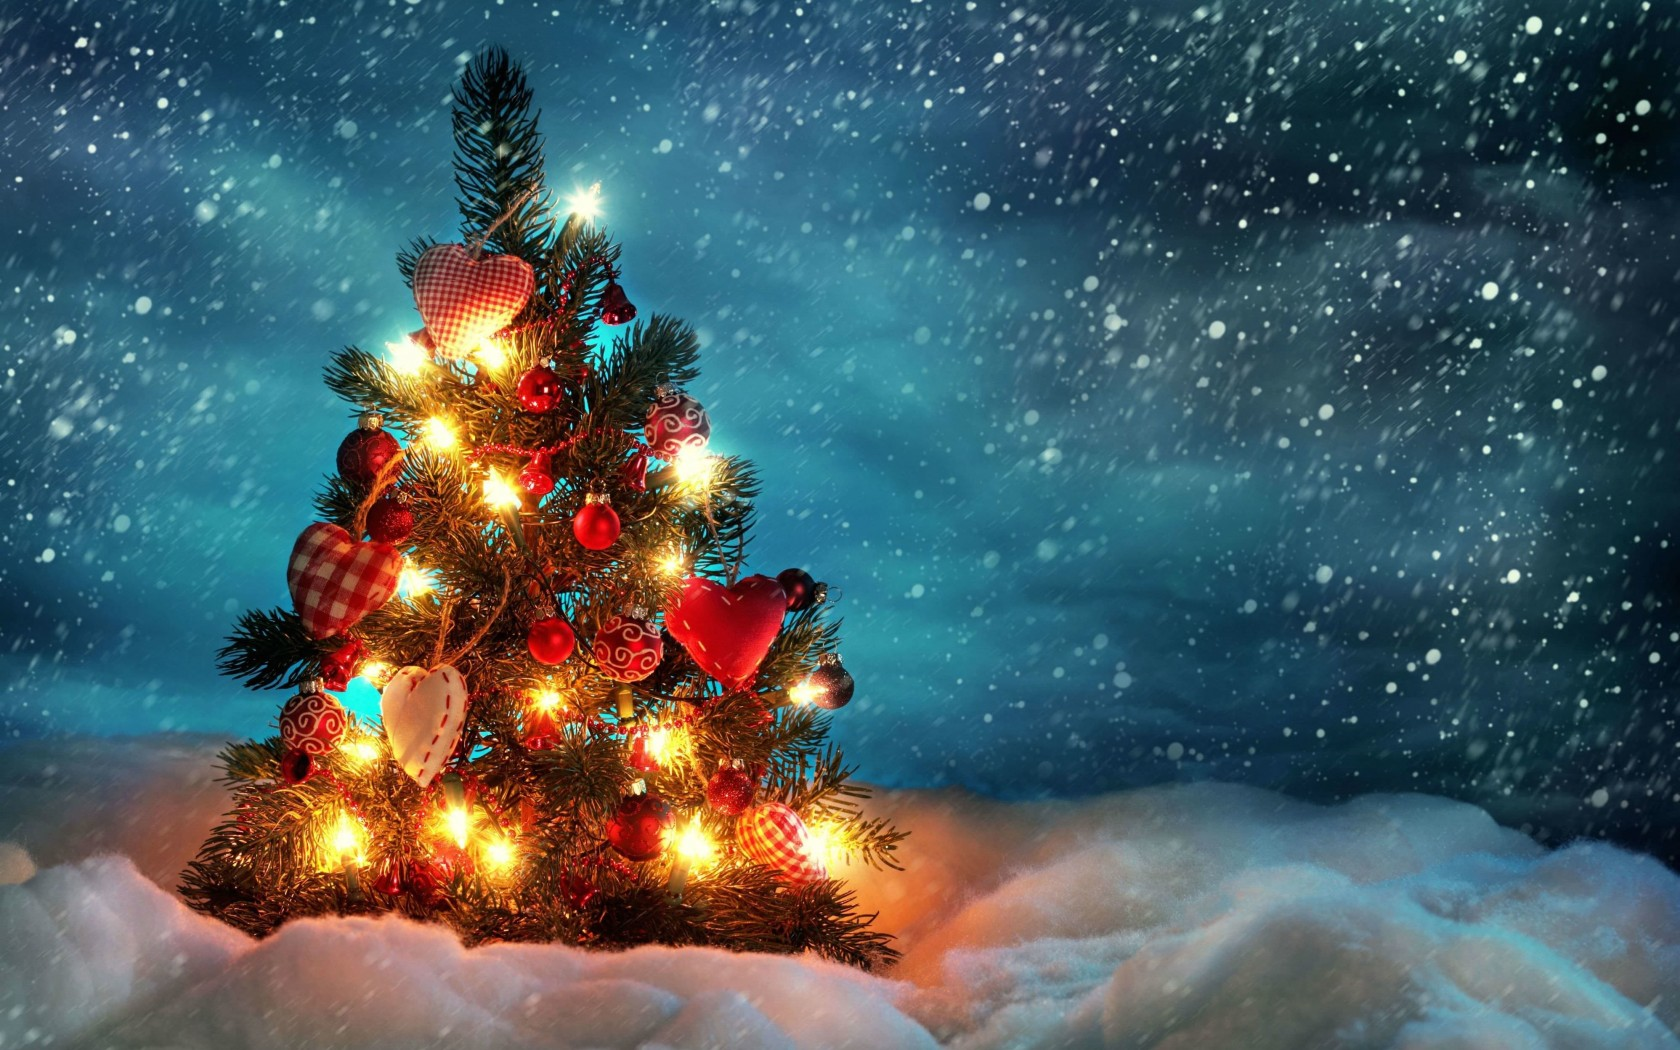 Christmas Tree Wallpaper for Desktop 1680x1050